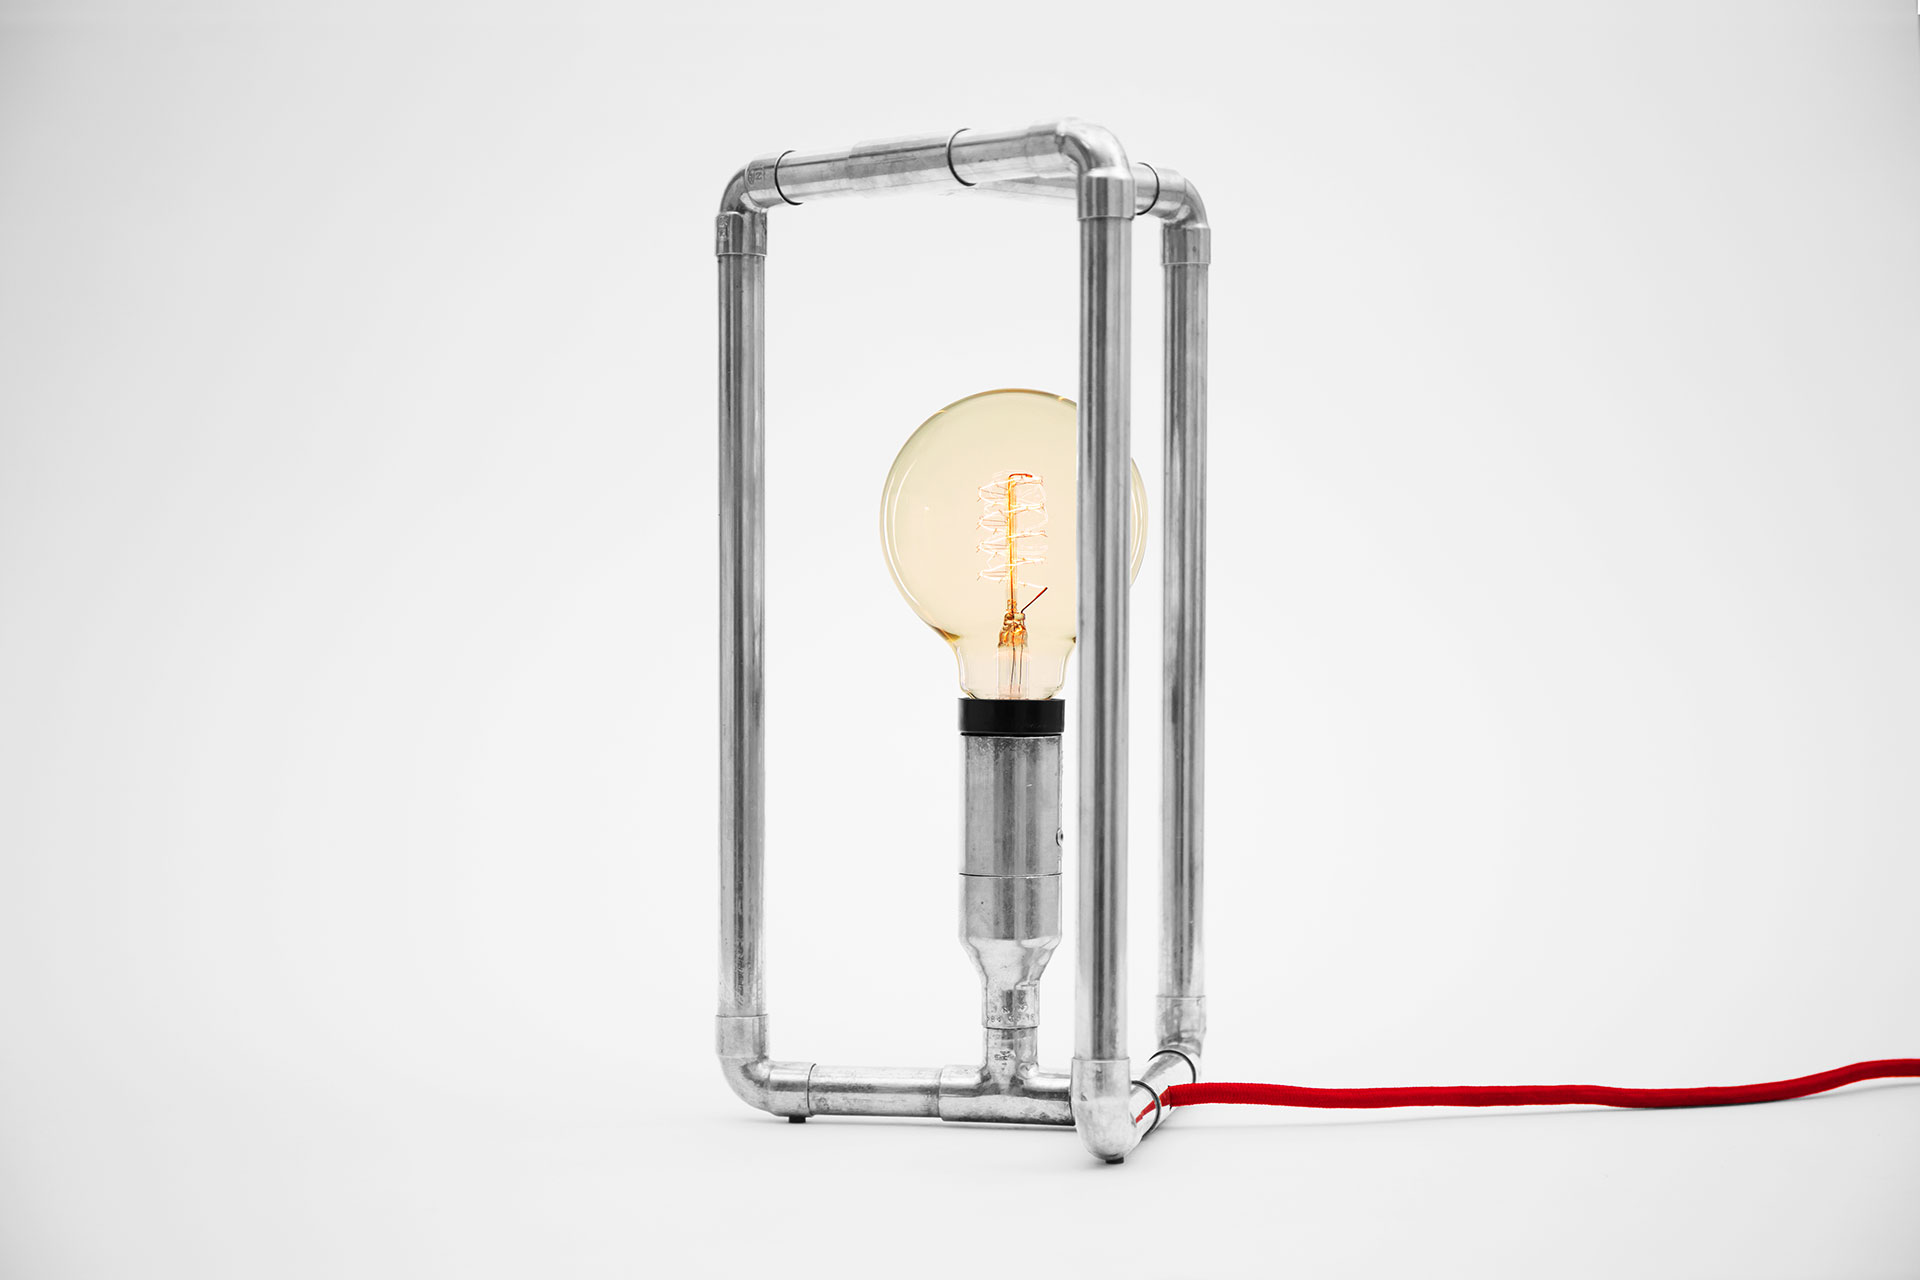 Fun design table lamp in silver nickel plated metal finish with cool touch dimmer inspired by industrial style